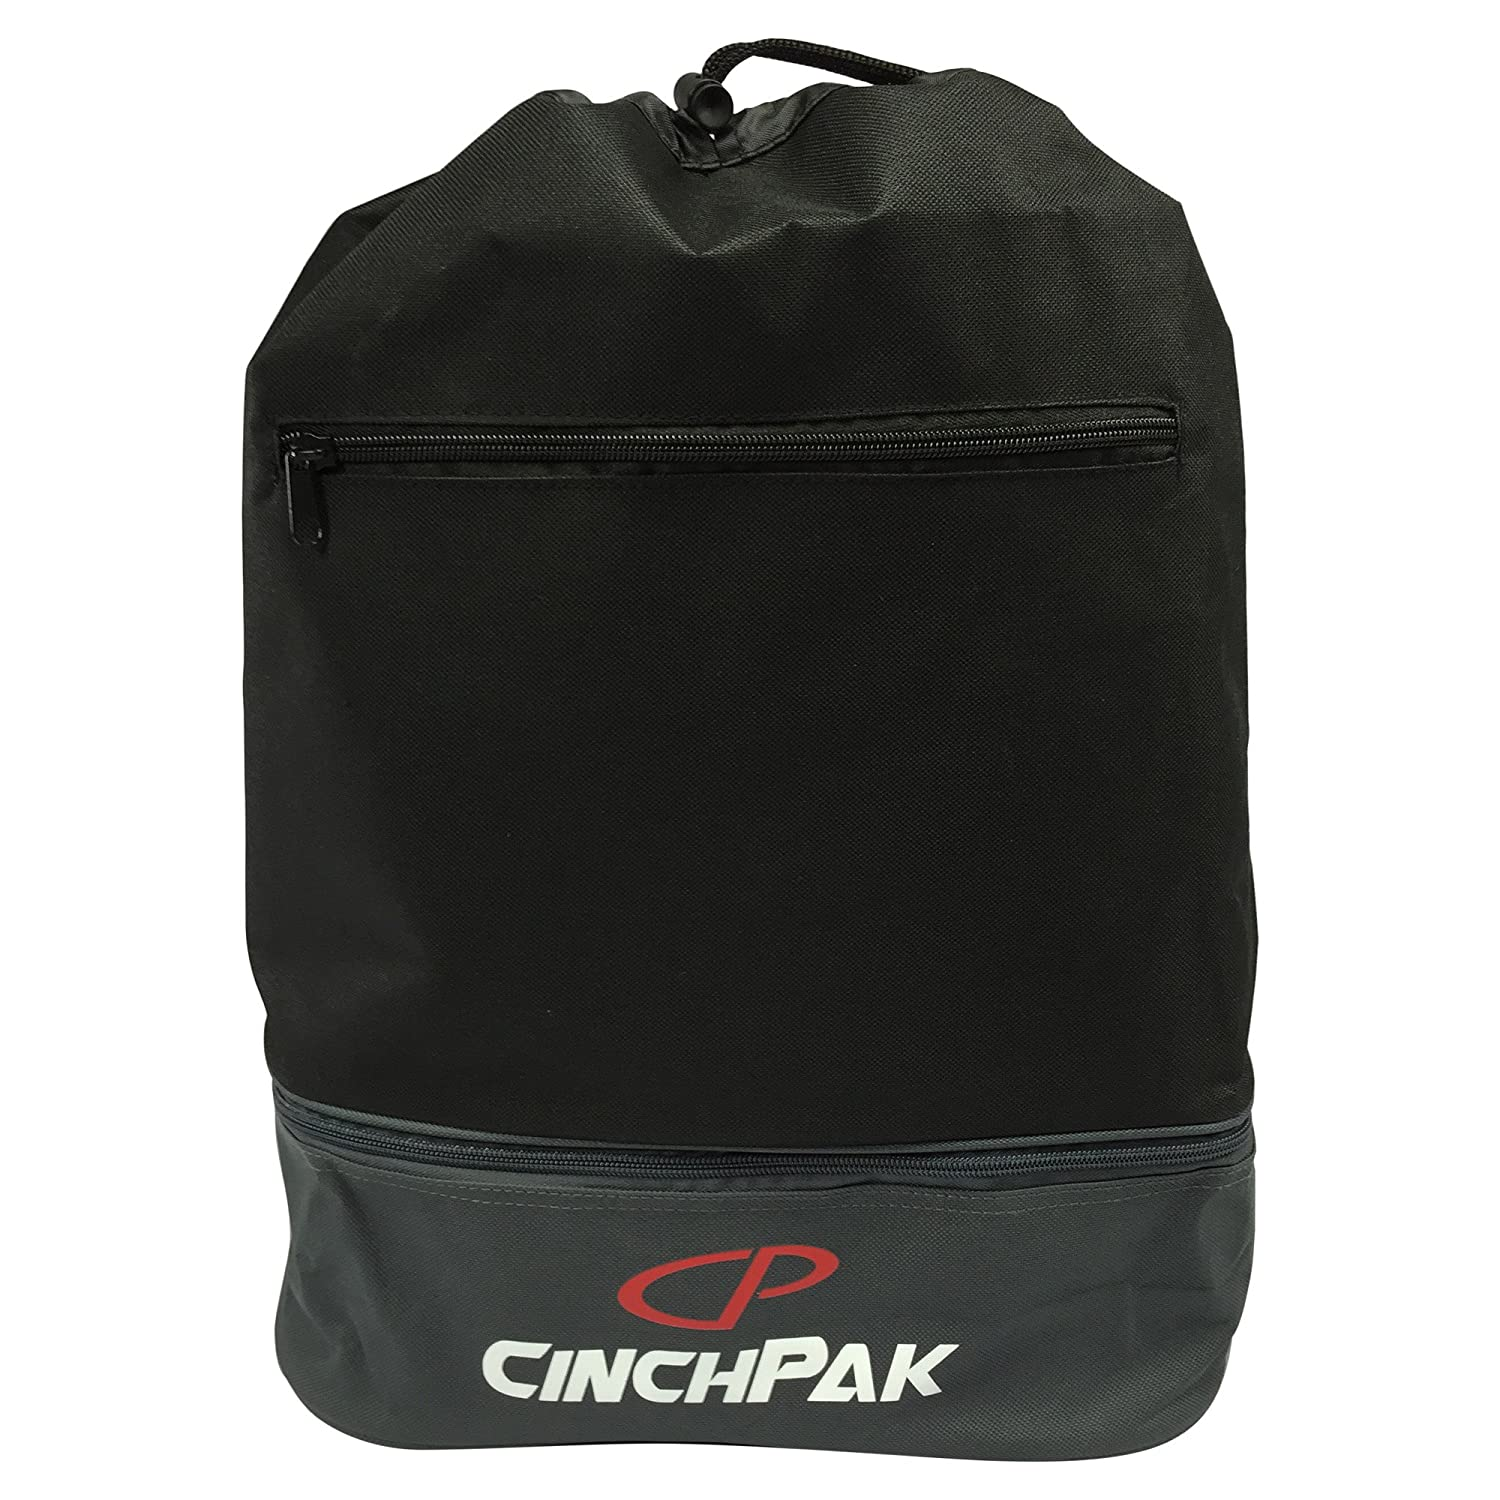 Cinch Pak Dual Compartment Drawstring Bag by Cinch Pak